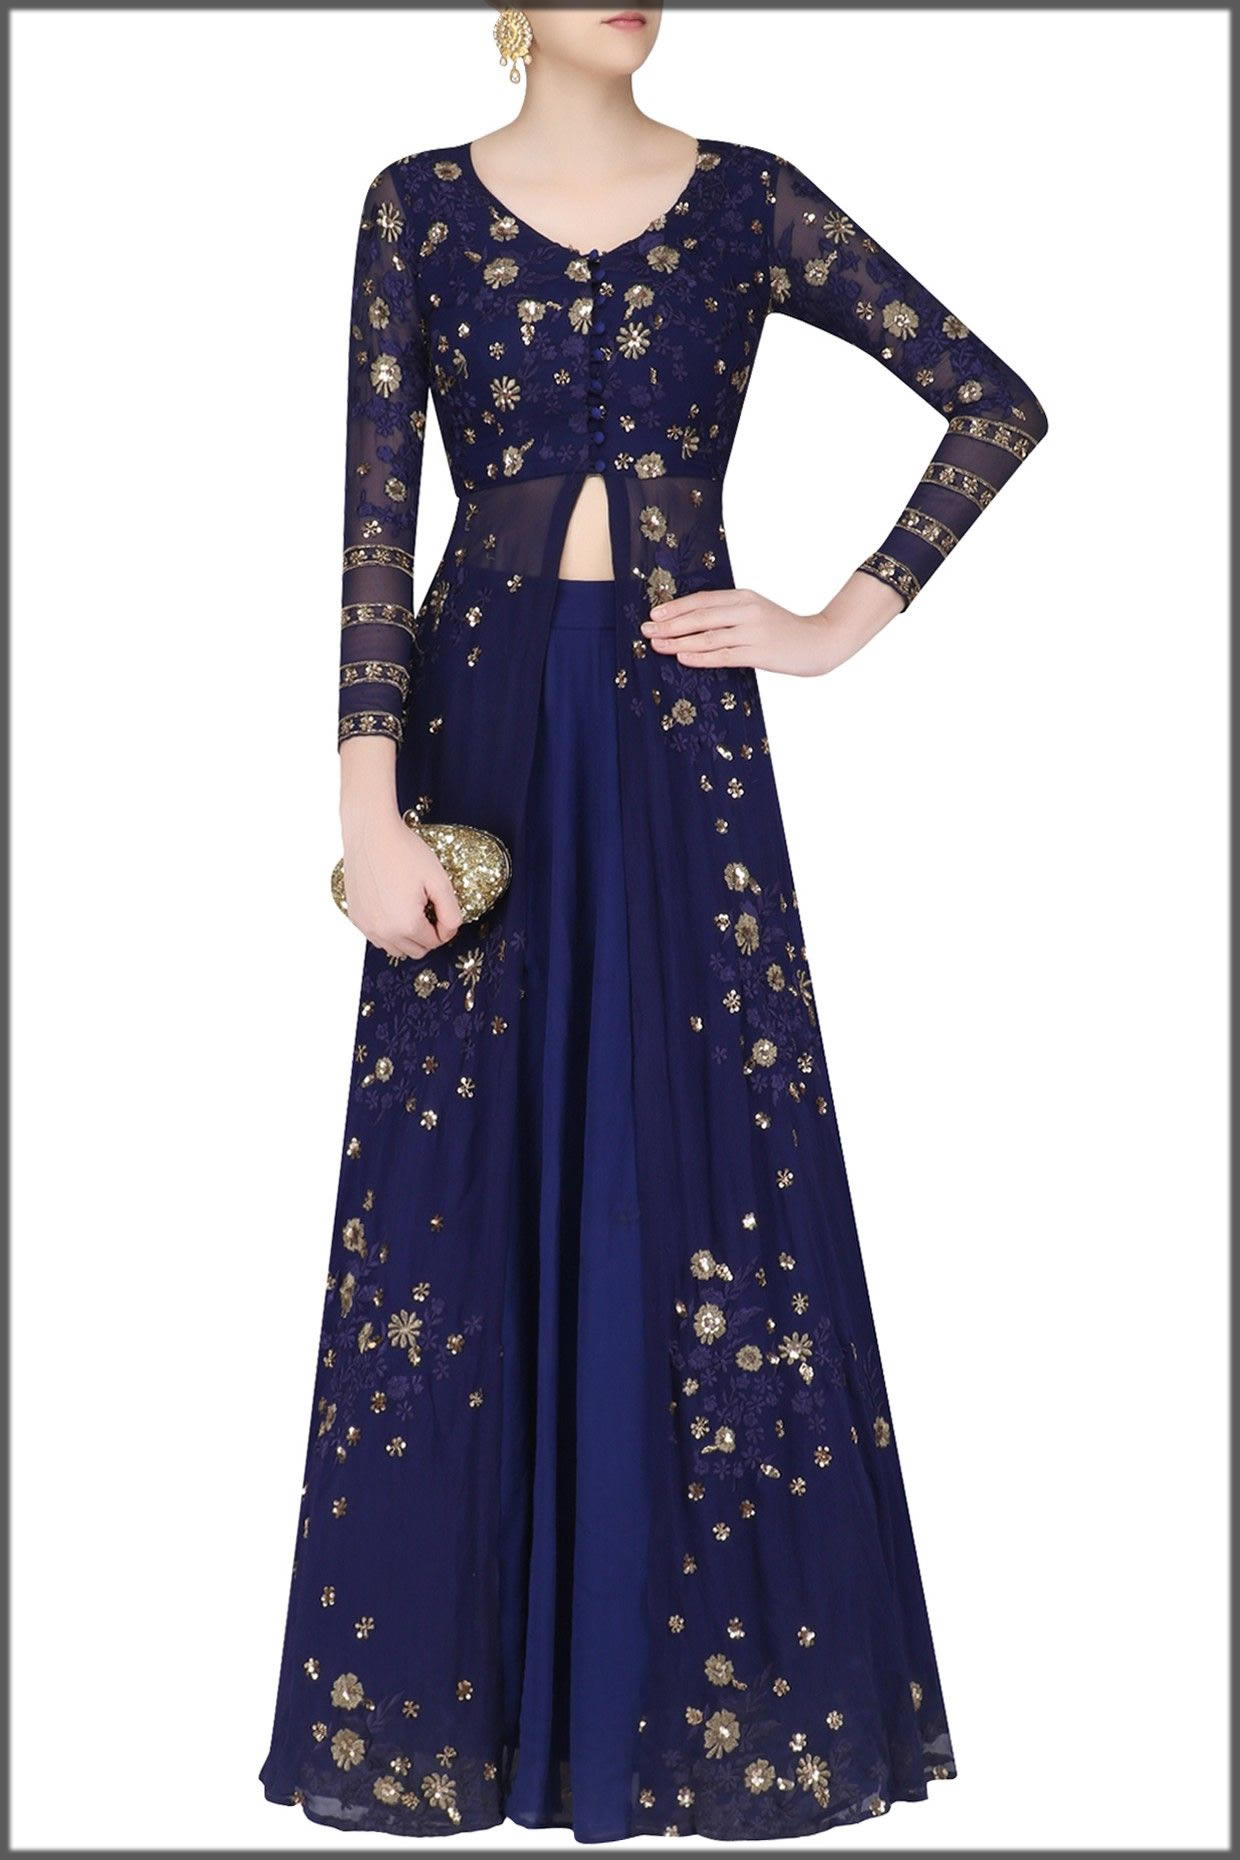 Cool Gown Design For Women